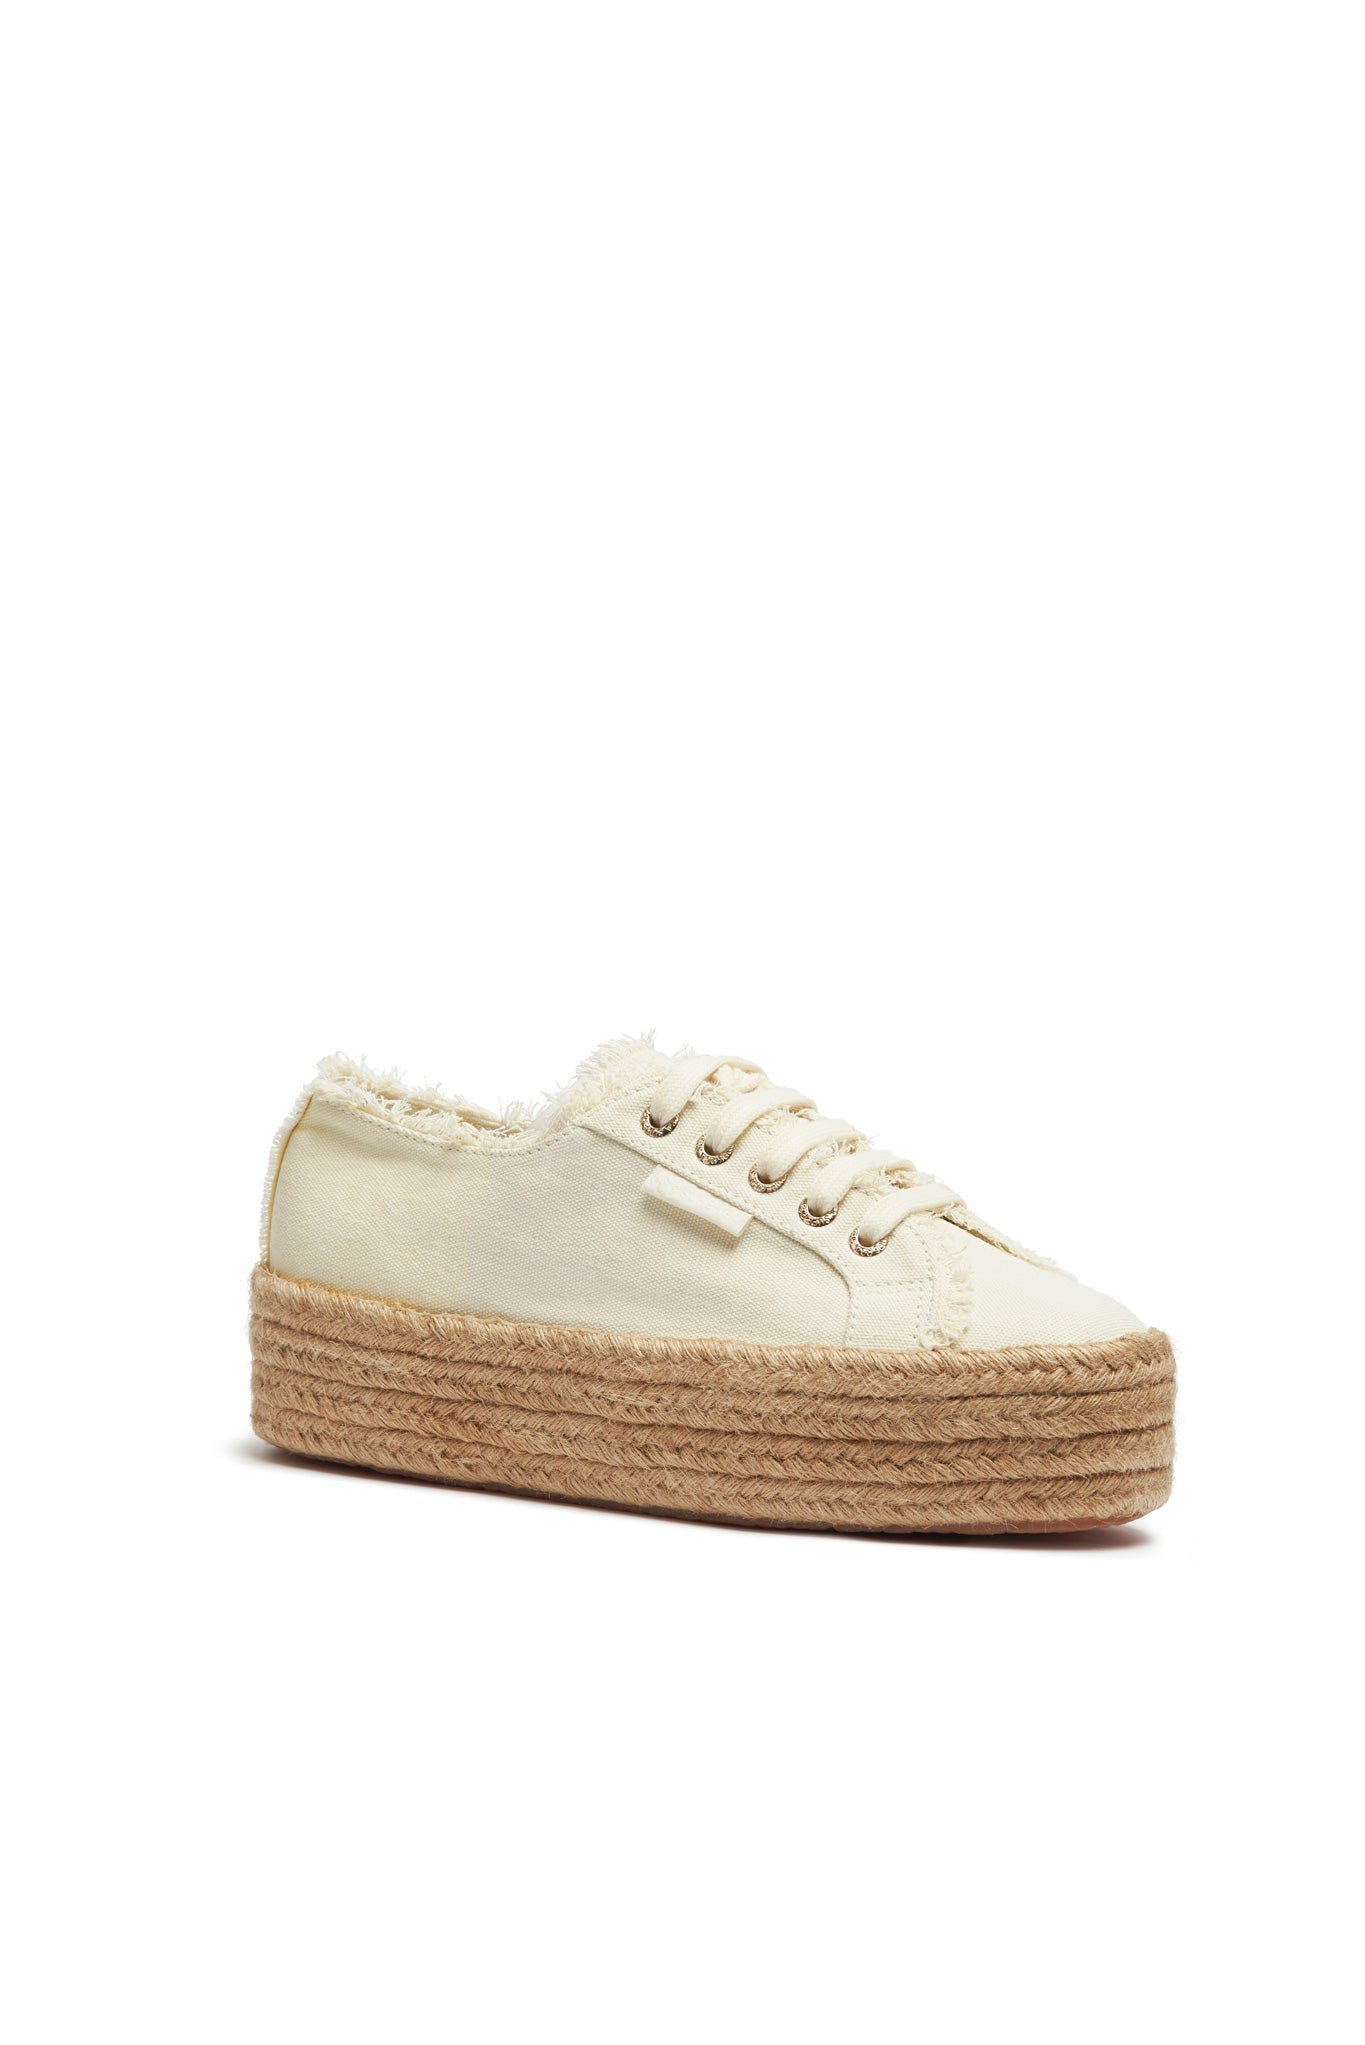 Aje x Superga Natural Platform Outfit View